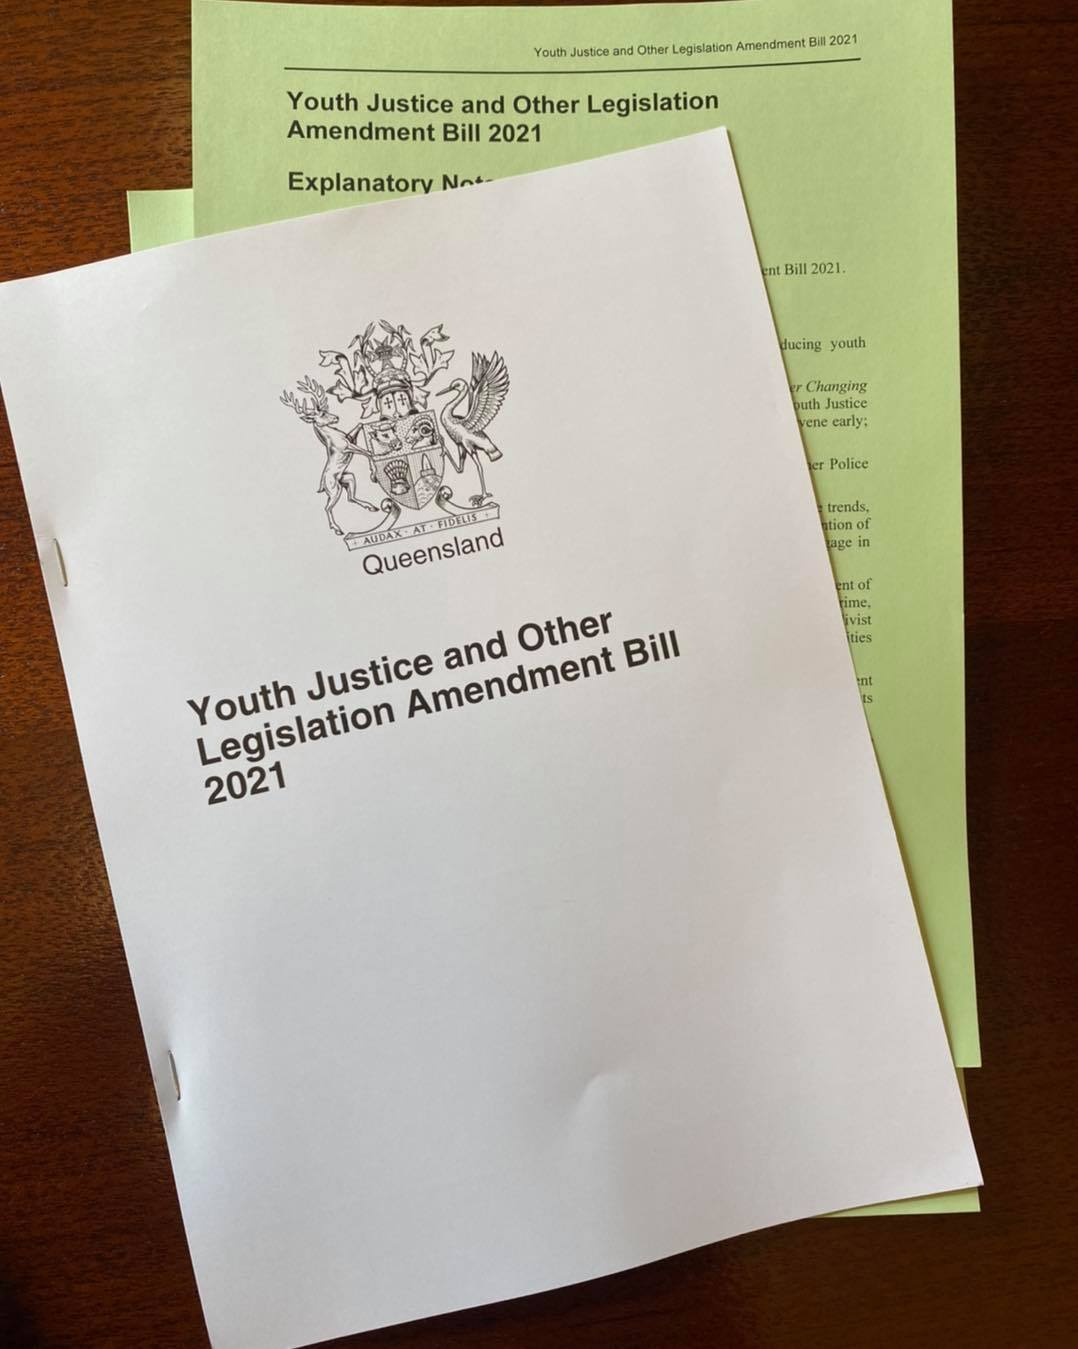 Youth Justice and Other Legislation Amendment Bill 2021.